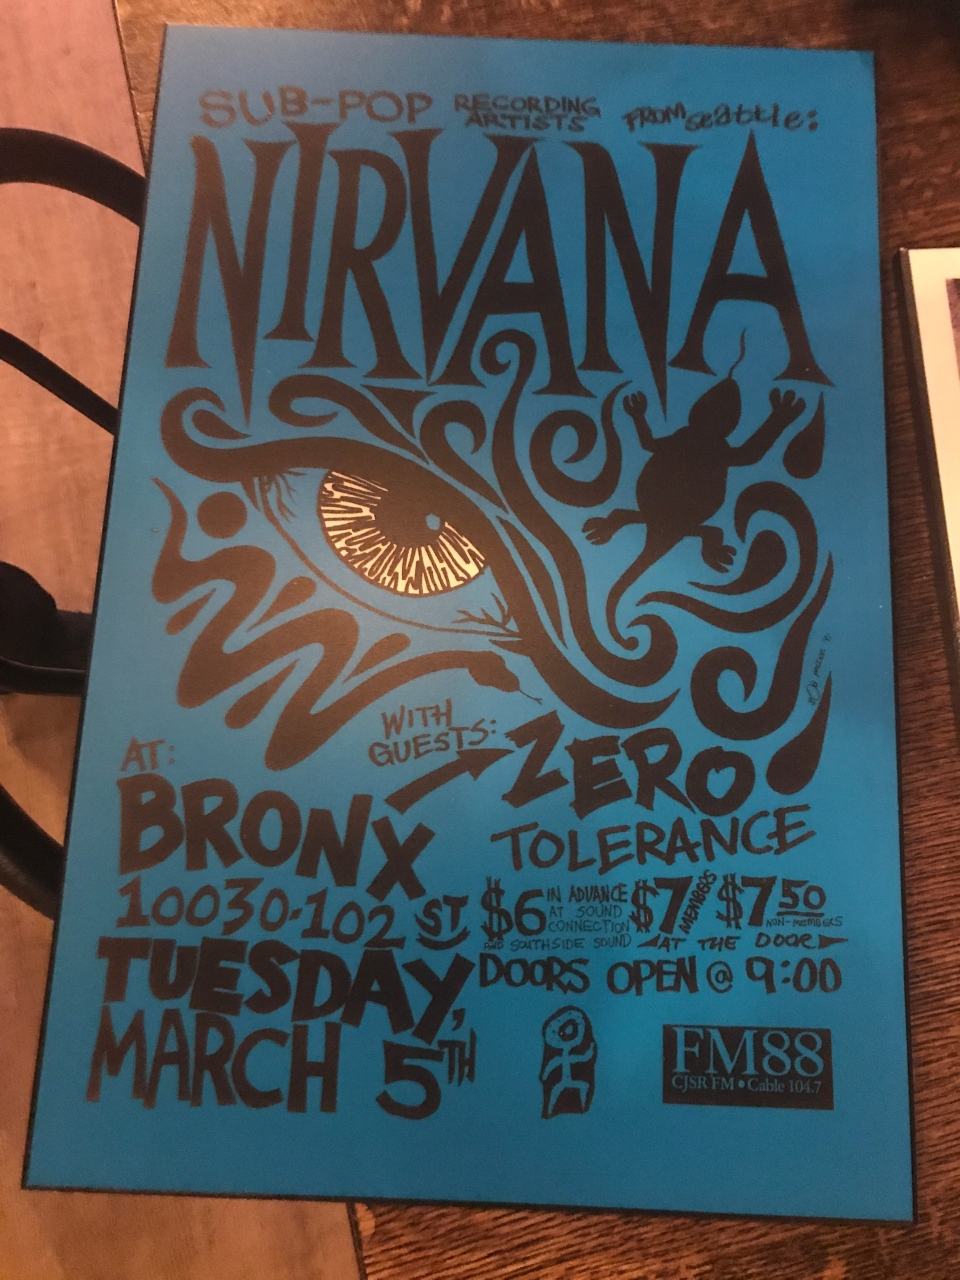 Looking at 1991 Nirvana poster, Starlite Room owner Tyson Cale Boyd recalls the venue has built a